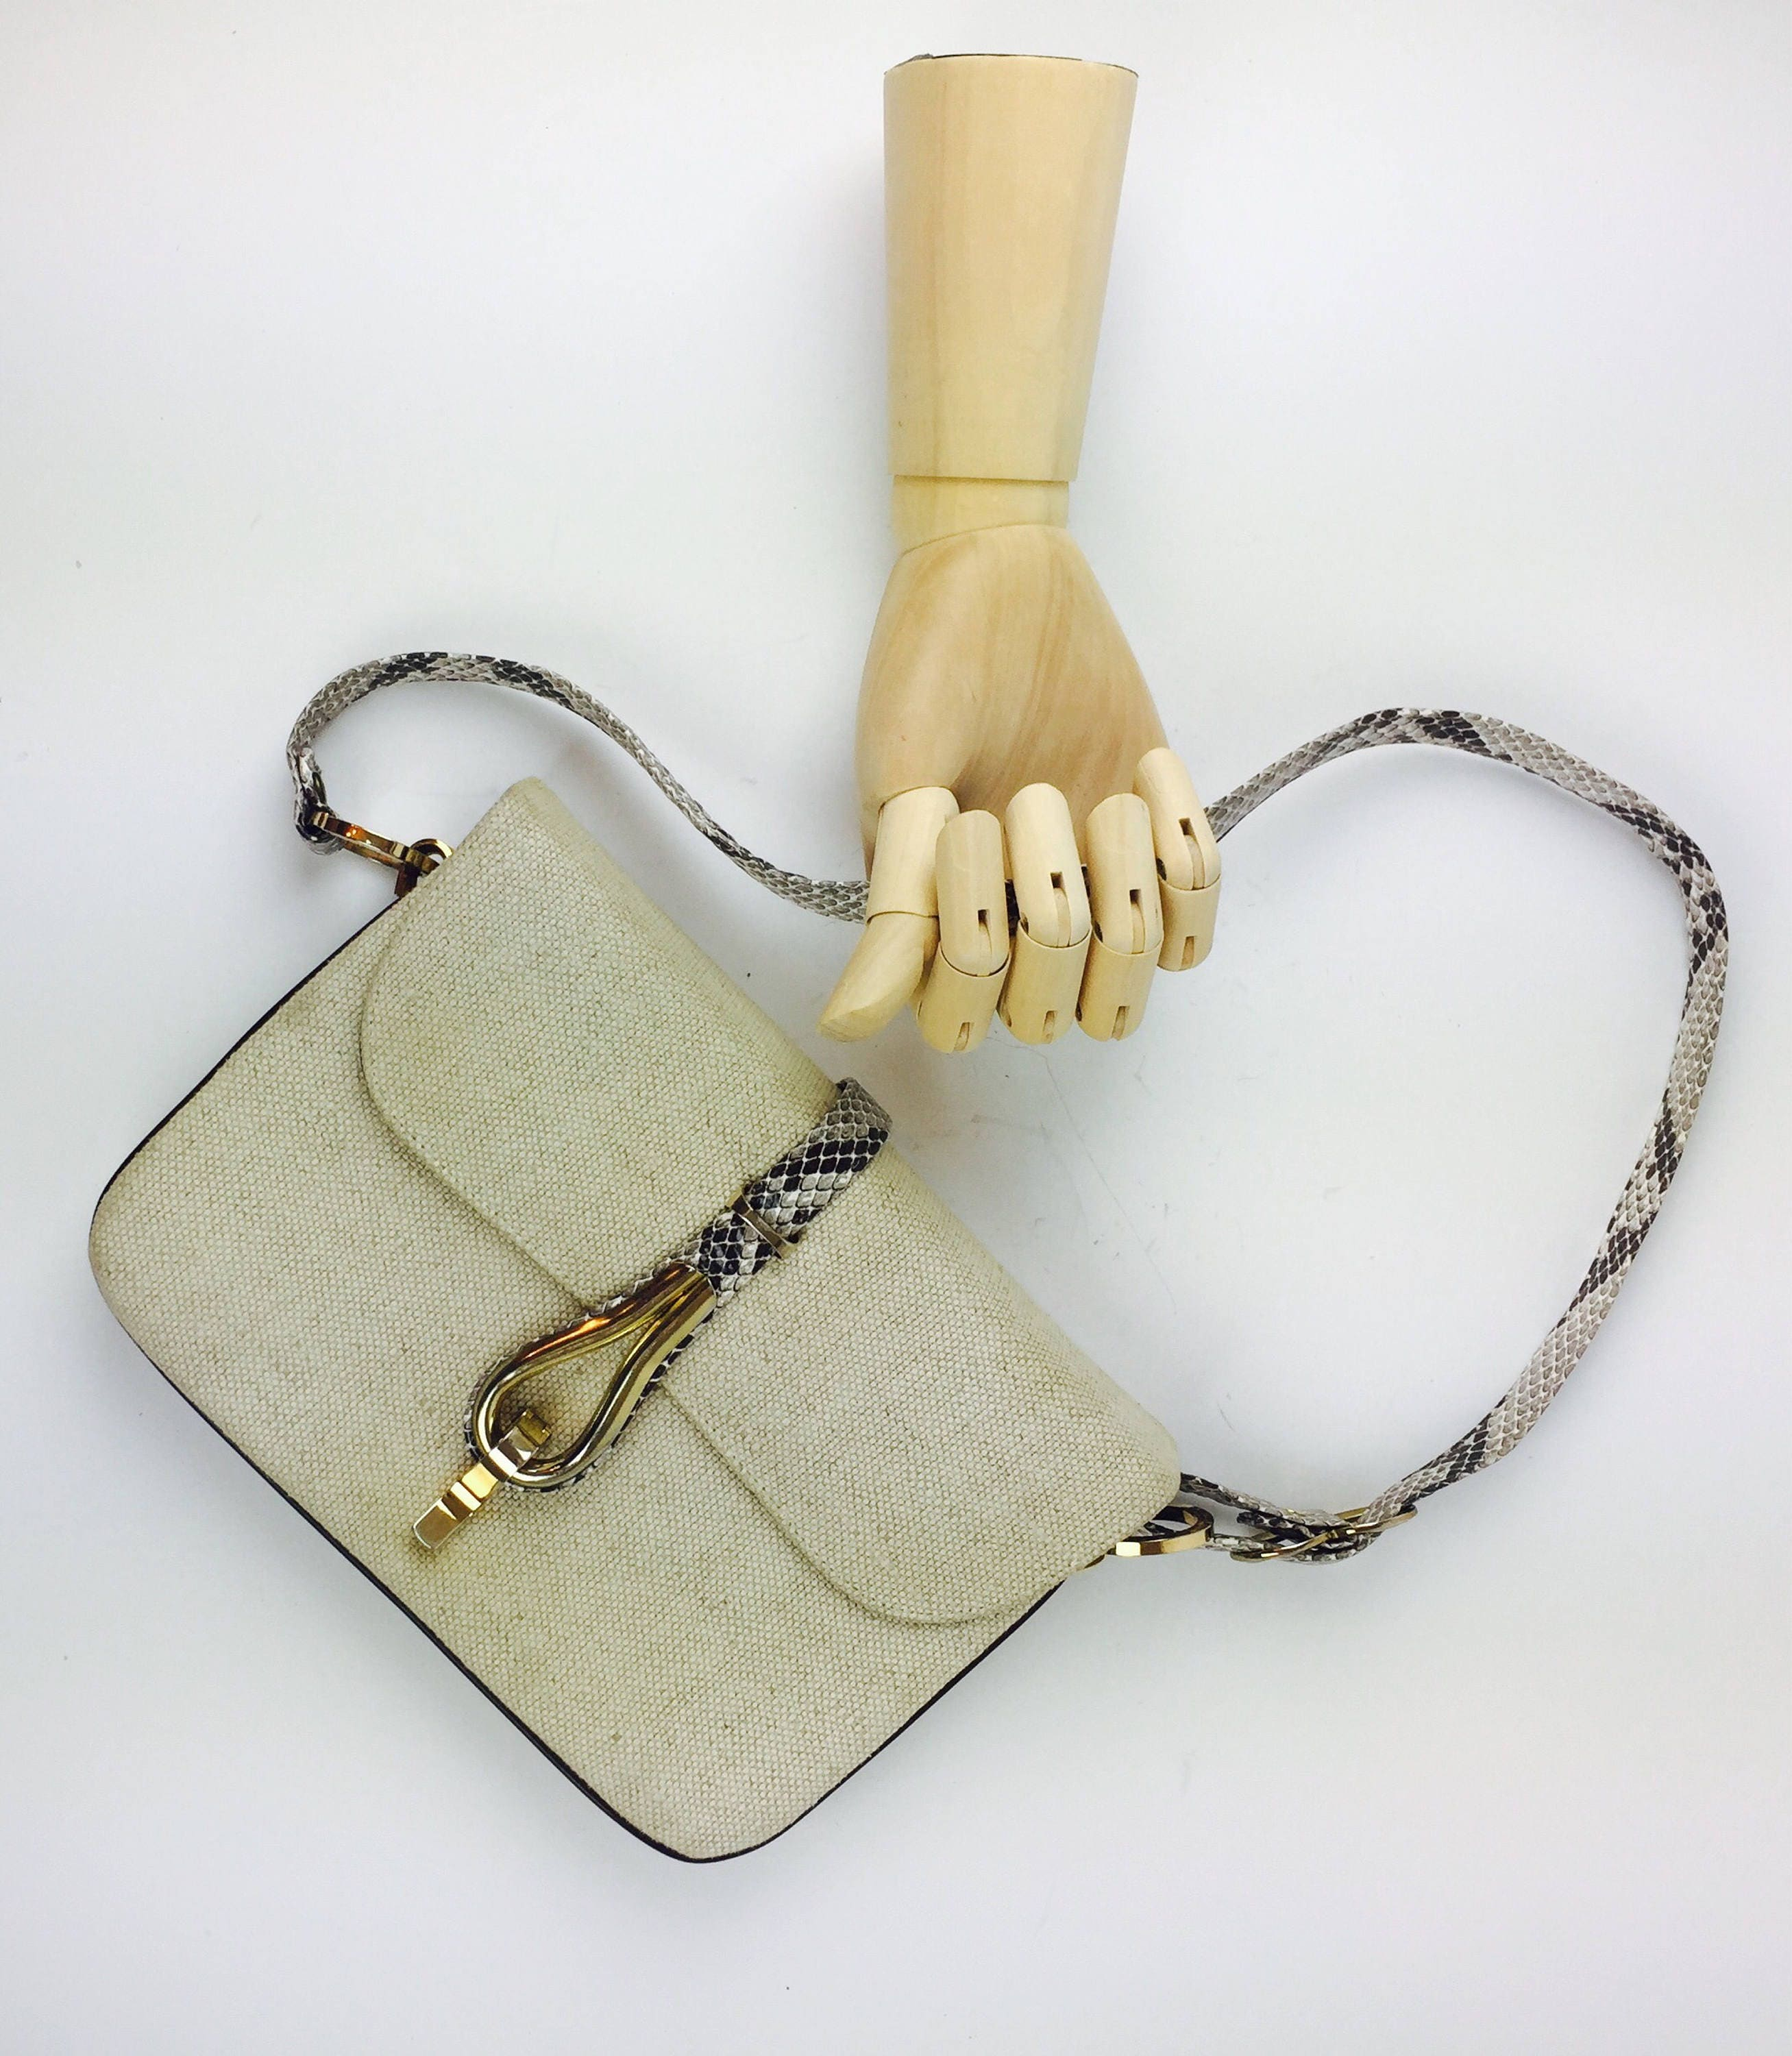 d33776d2fc Vintage 80 s modern khaki woven fabric snakeskin leather gold hardware  handbag. 1